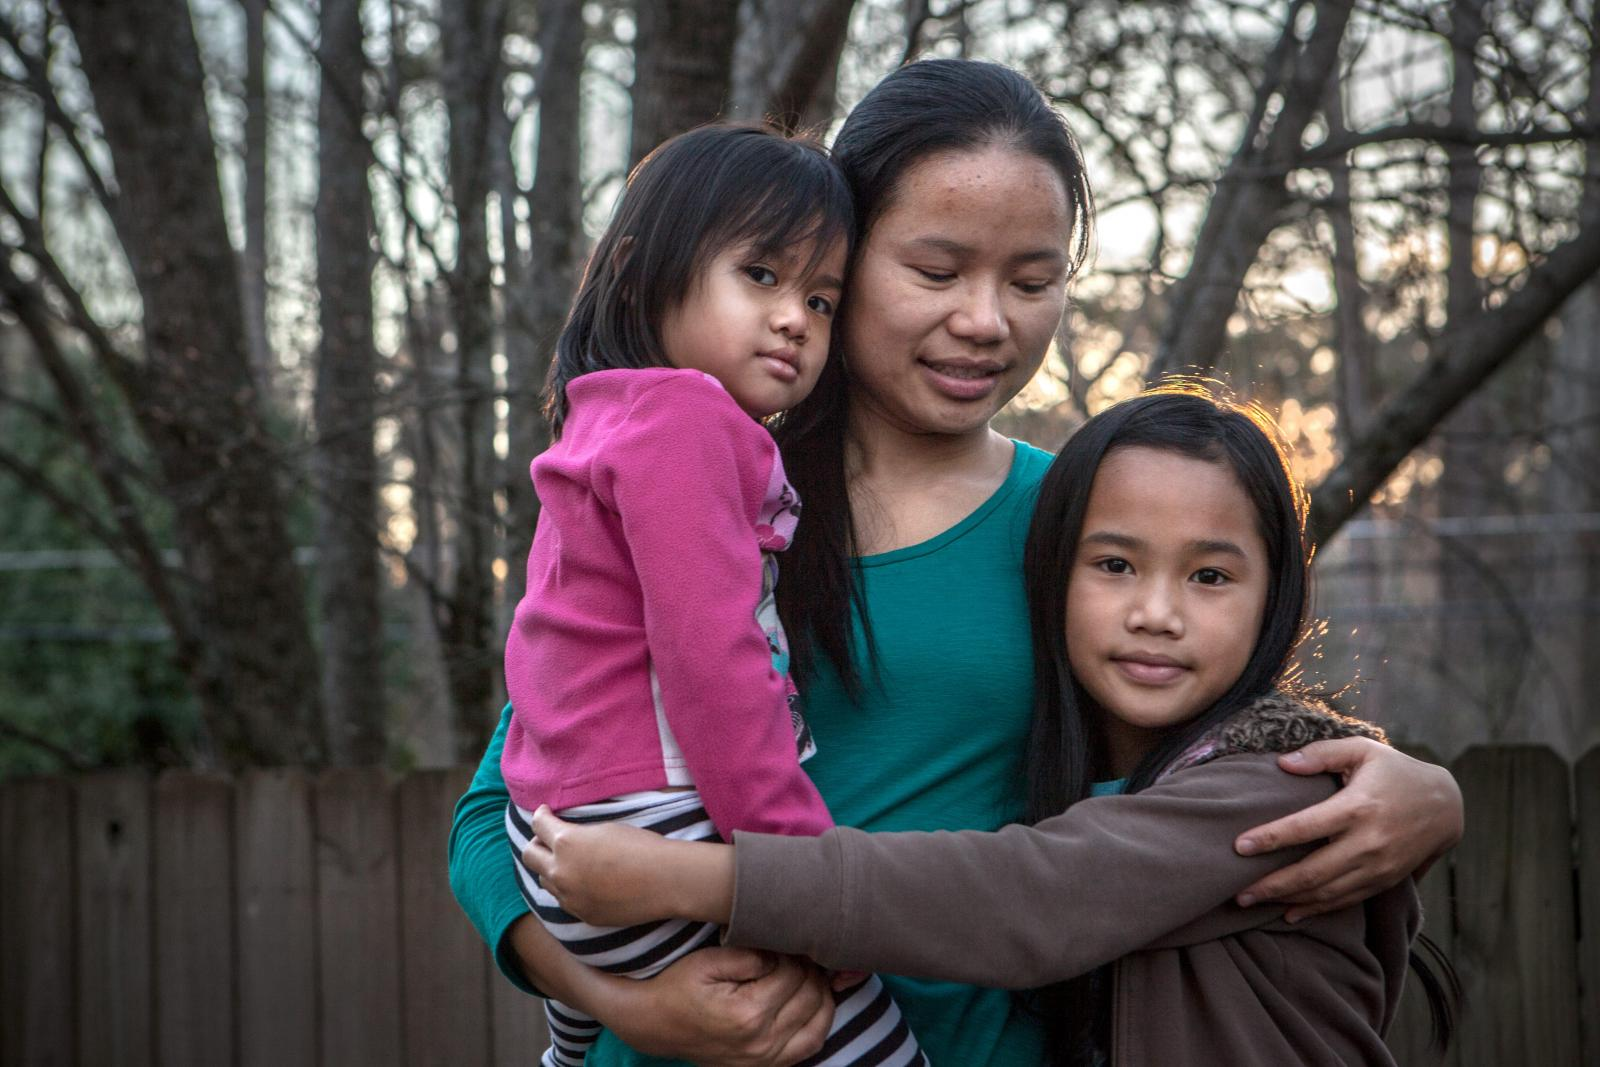 Klaw Htoo and her daughters Gloria and Sophia lived in a refugee camp in Thailand for nine years when they fled from Myanmar. Image Courtesy of rescue.org